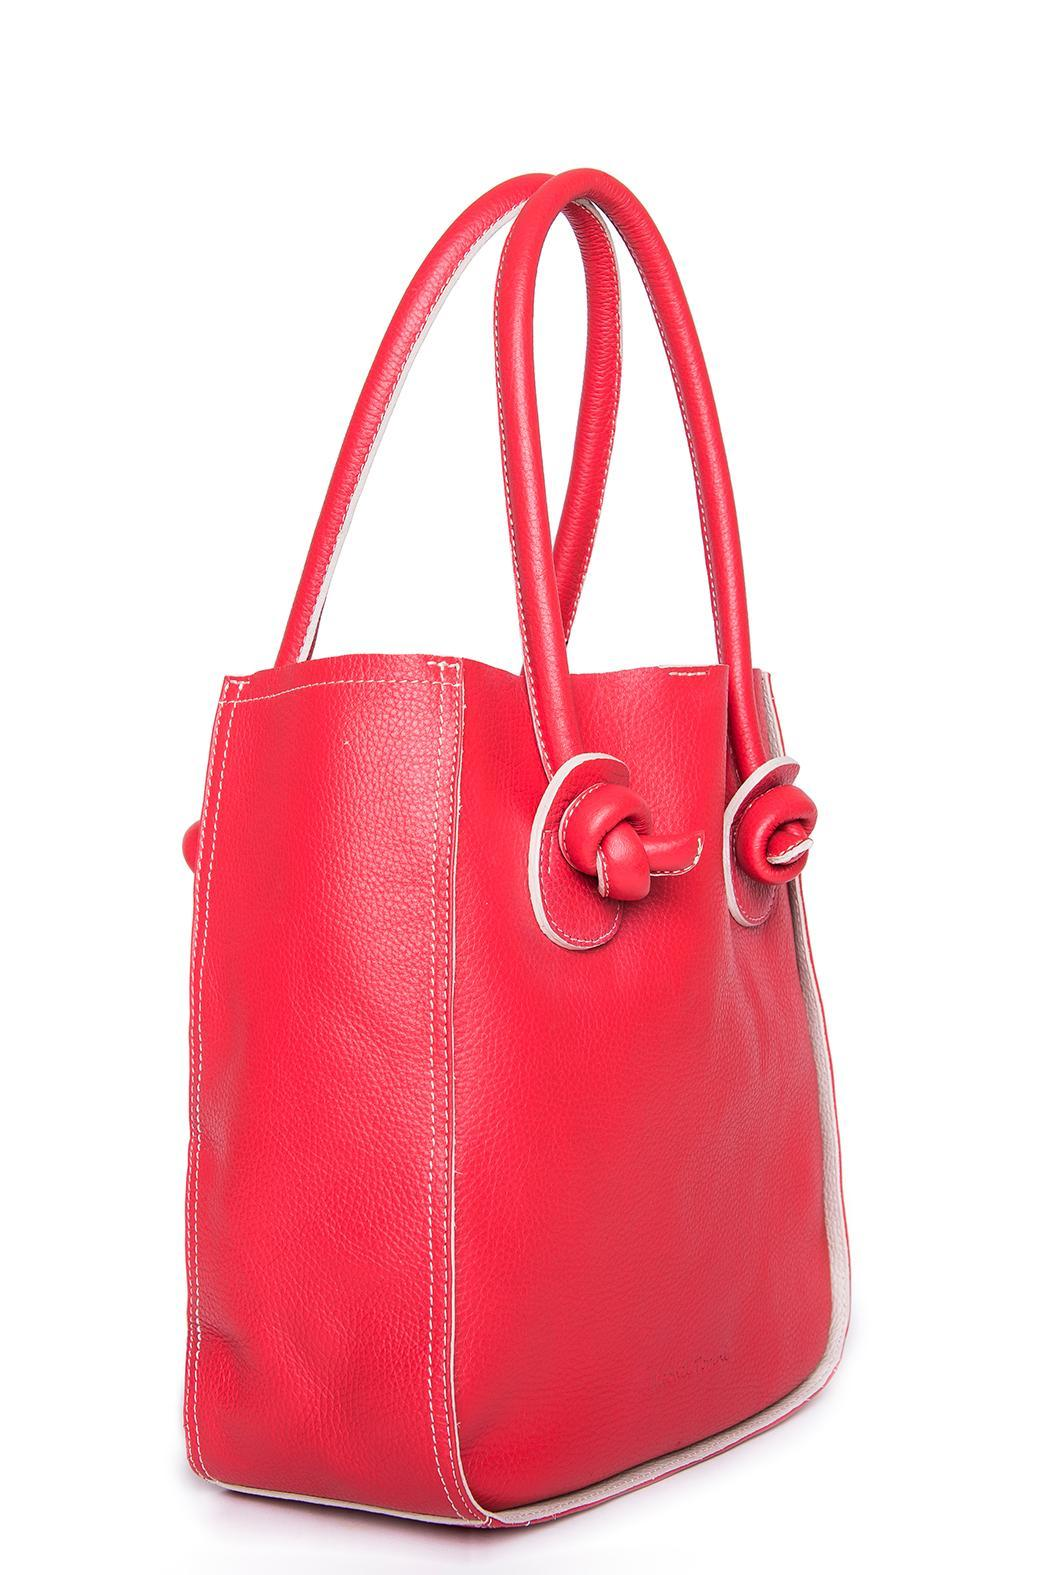 Torini Bags Red Florencia Tote - Front Full Image